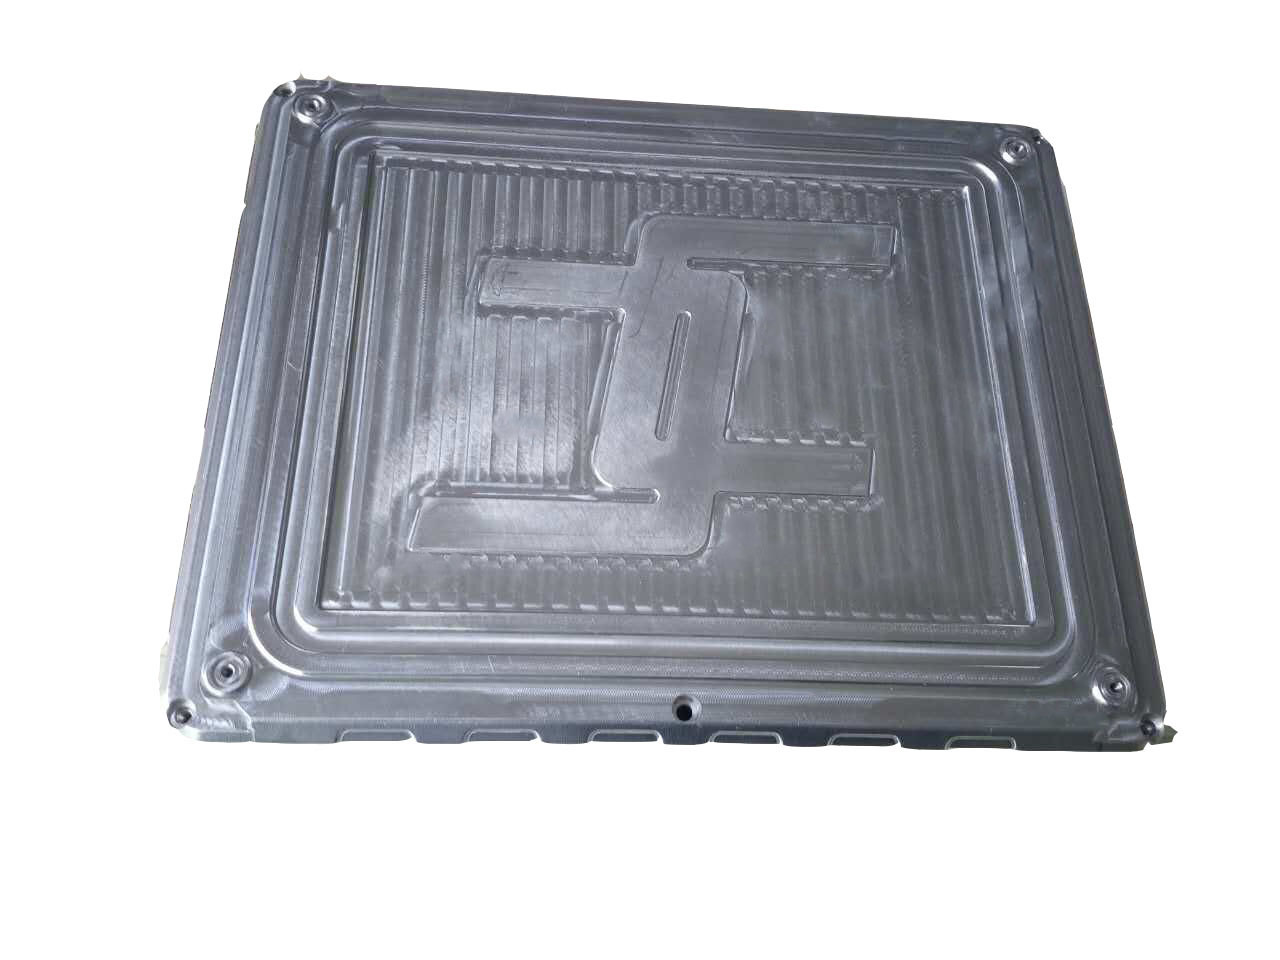 CNC Part, Aluminum CNC Machinery Part with Silvery Coating